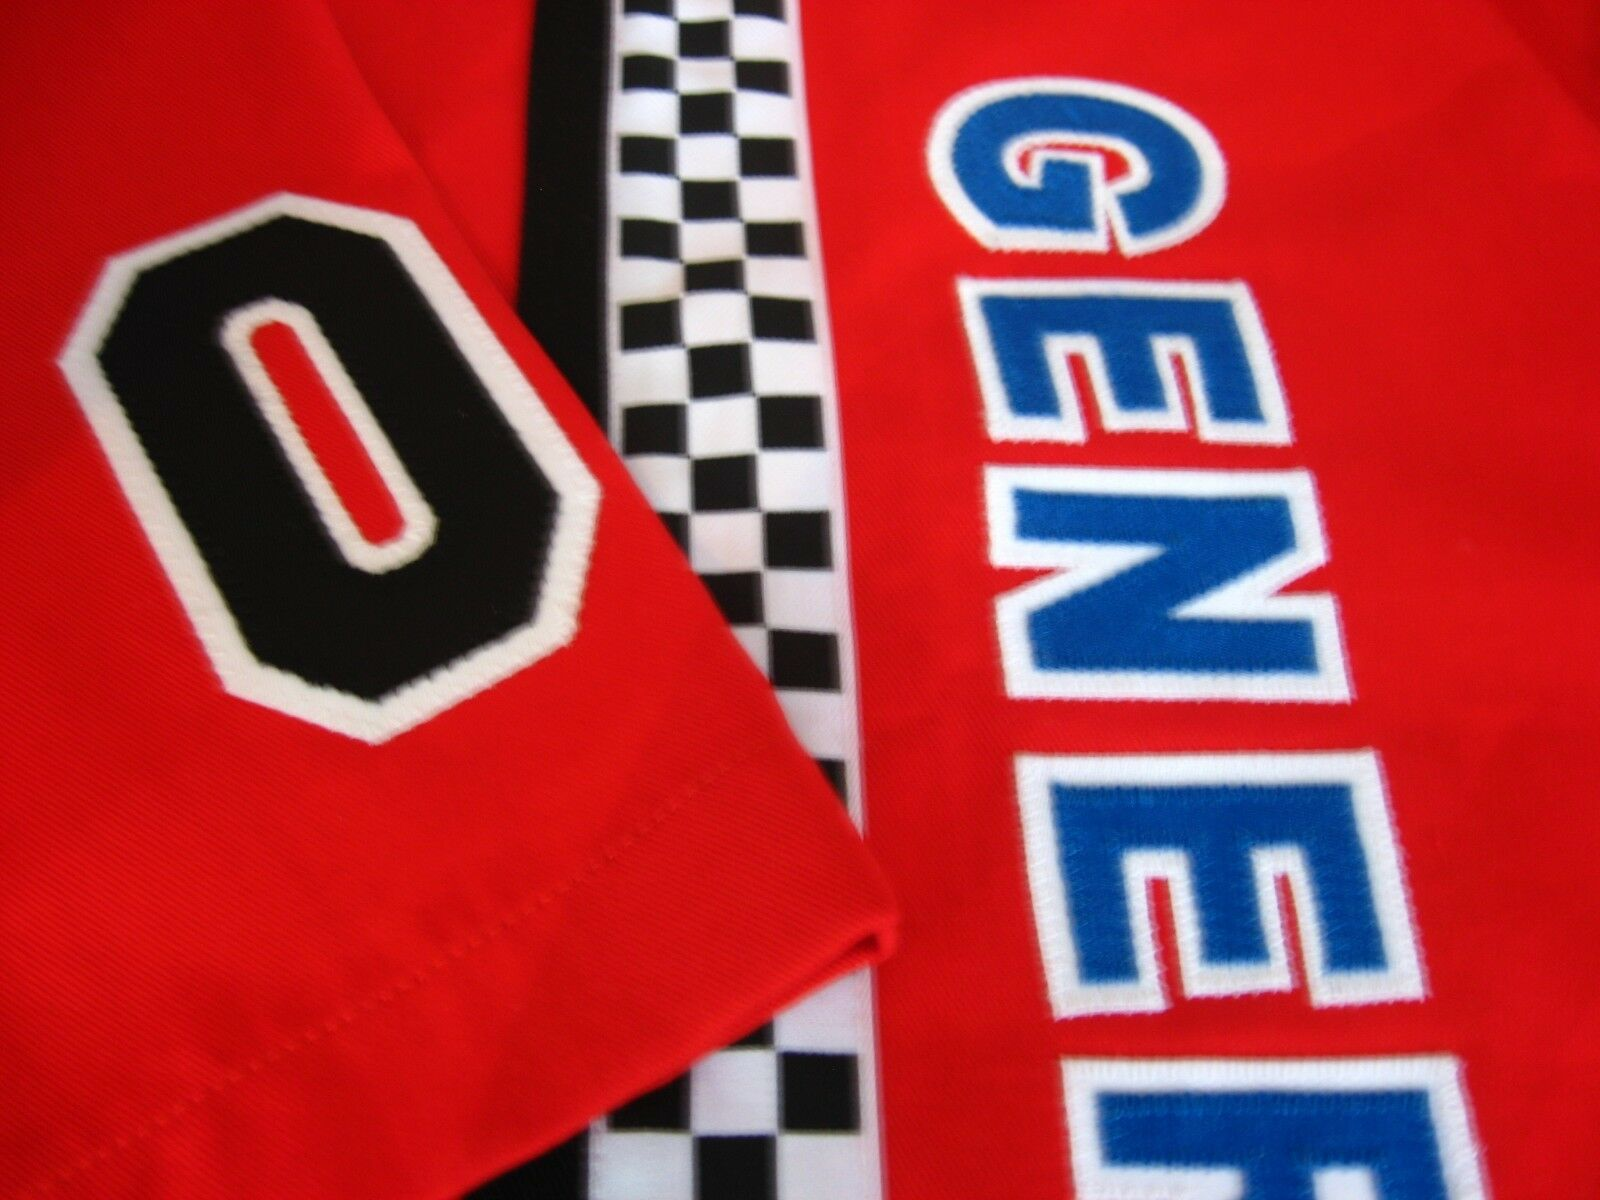 DUKES OF HAZZARD 4XL GENERAL LEE PRO NASCAR STYLE RACE BUTTON DRESS RED SHIRT